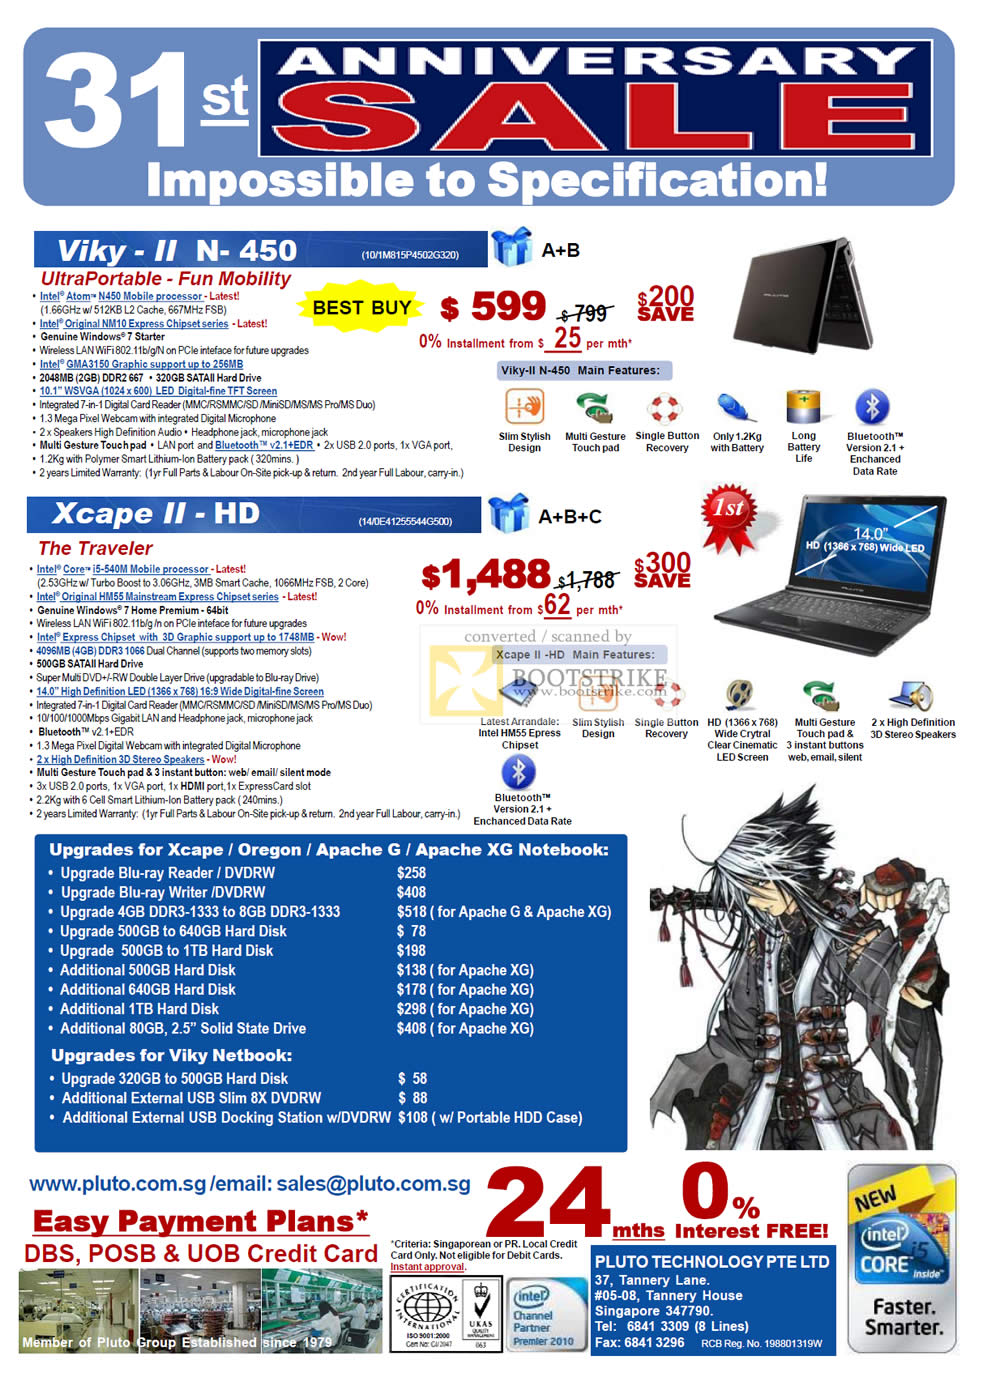 PC Show 2010 price list image brochure of Pluto Technology Notebooks Viky II N 450 Xcape II HD